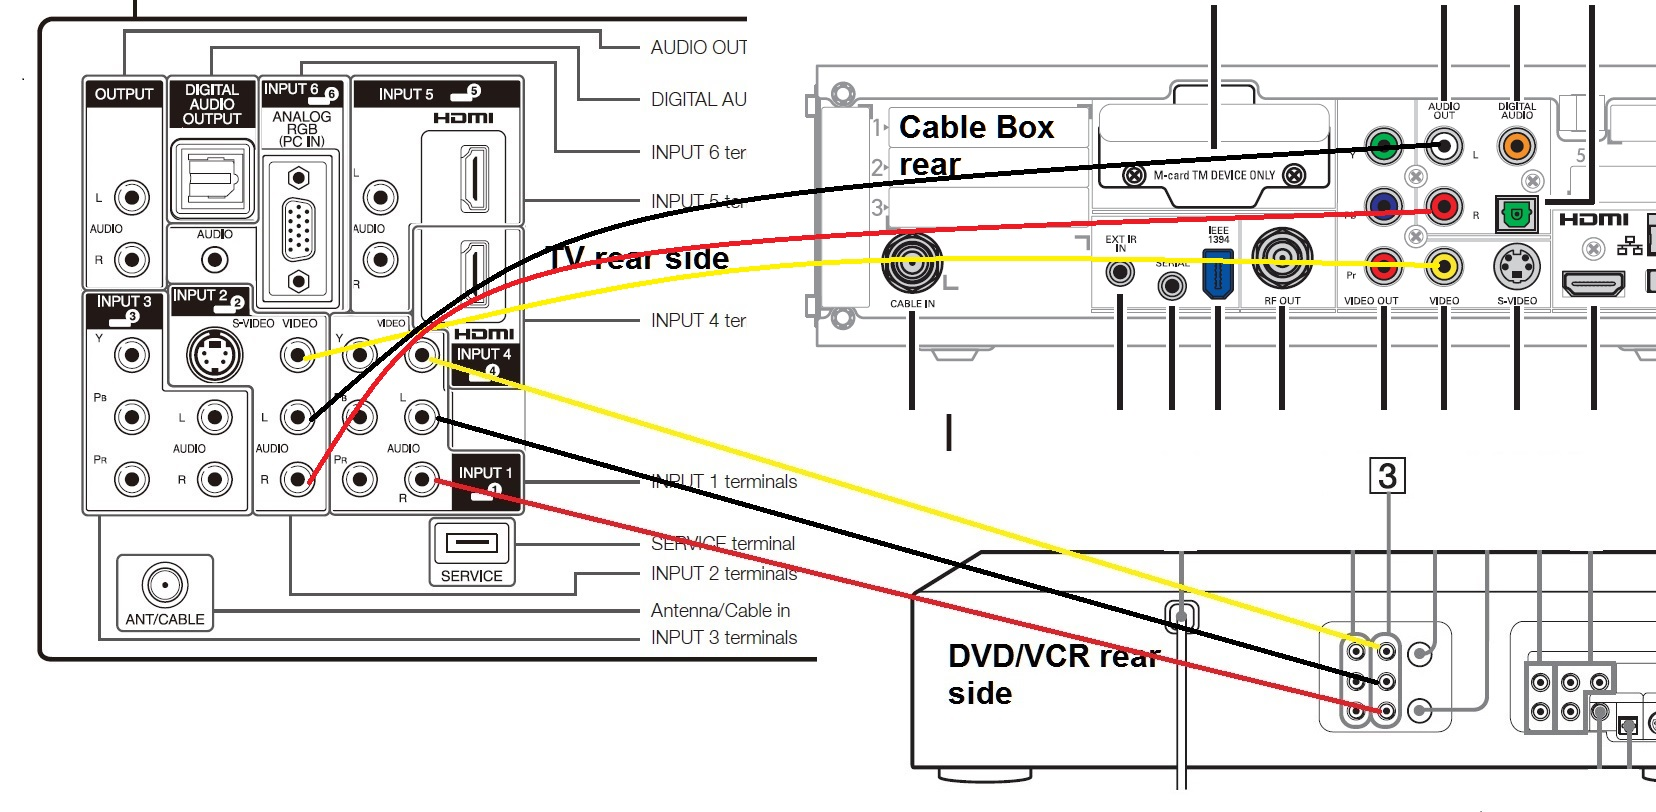 i have a sharp lc 32 d44u tv a motorola dcx3200 cable box please check following picture where i draw lines for cable box wires as well after connection setup all is required to switch tv from video 1 to video 2